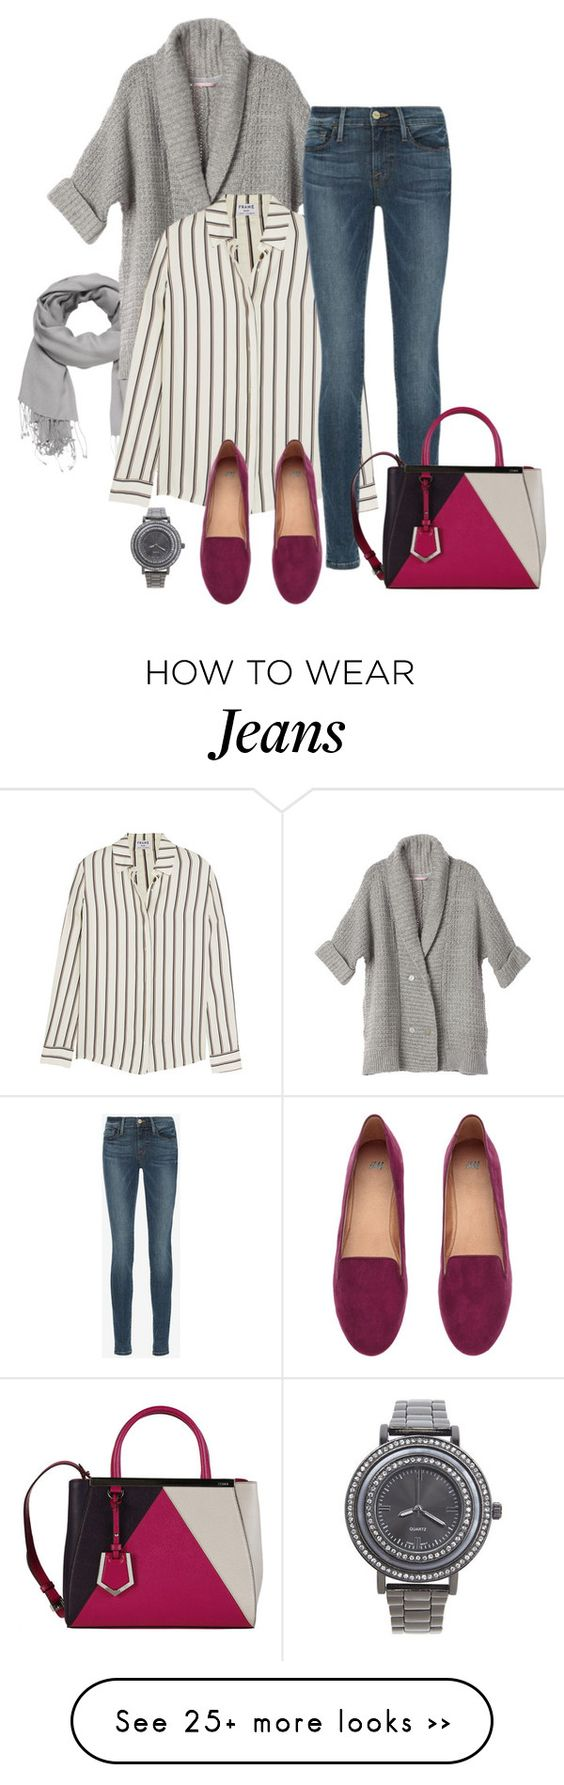 """Skinny Jeans & Loafers"" by eva-kouliaridou on Polyvore featuring maurices, Frame Denim, H&M, Fendi and Lane Bryant:"